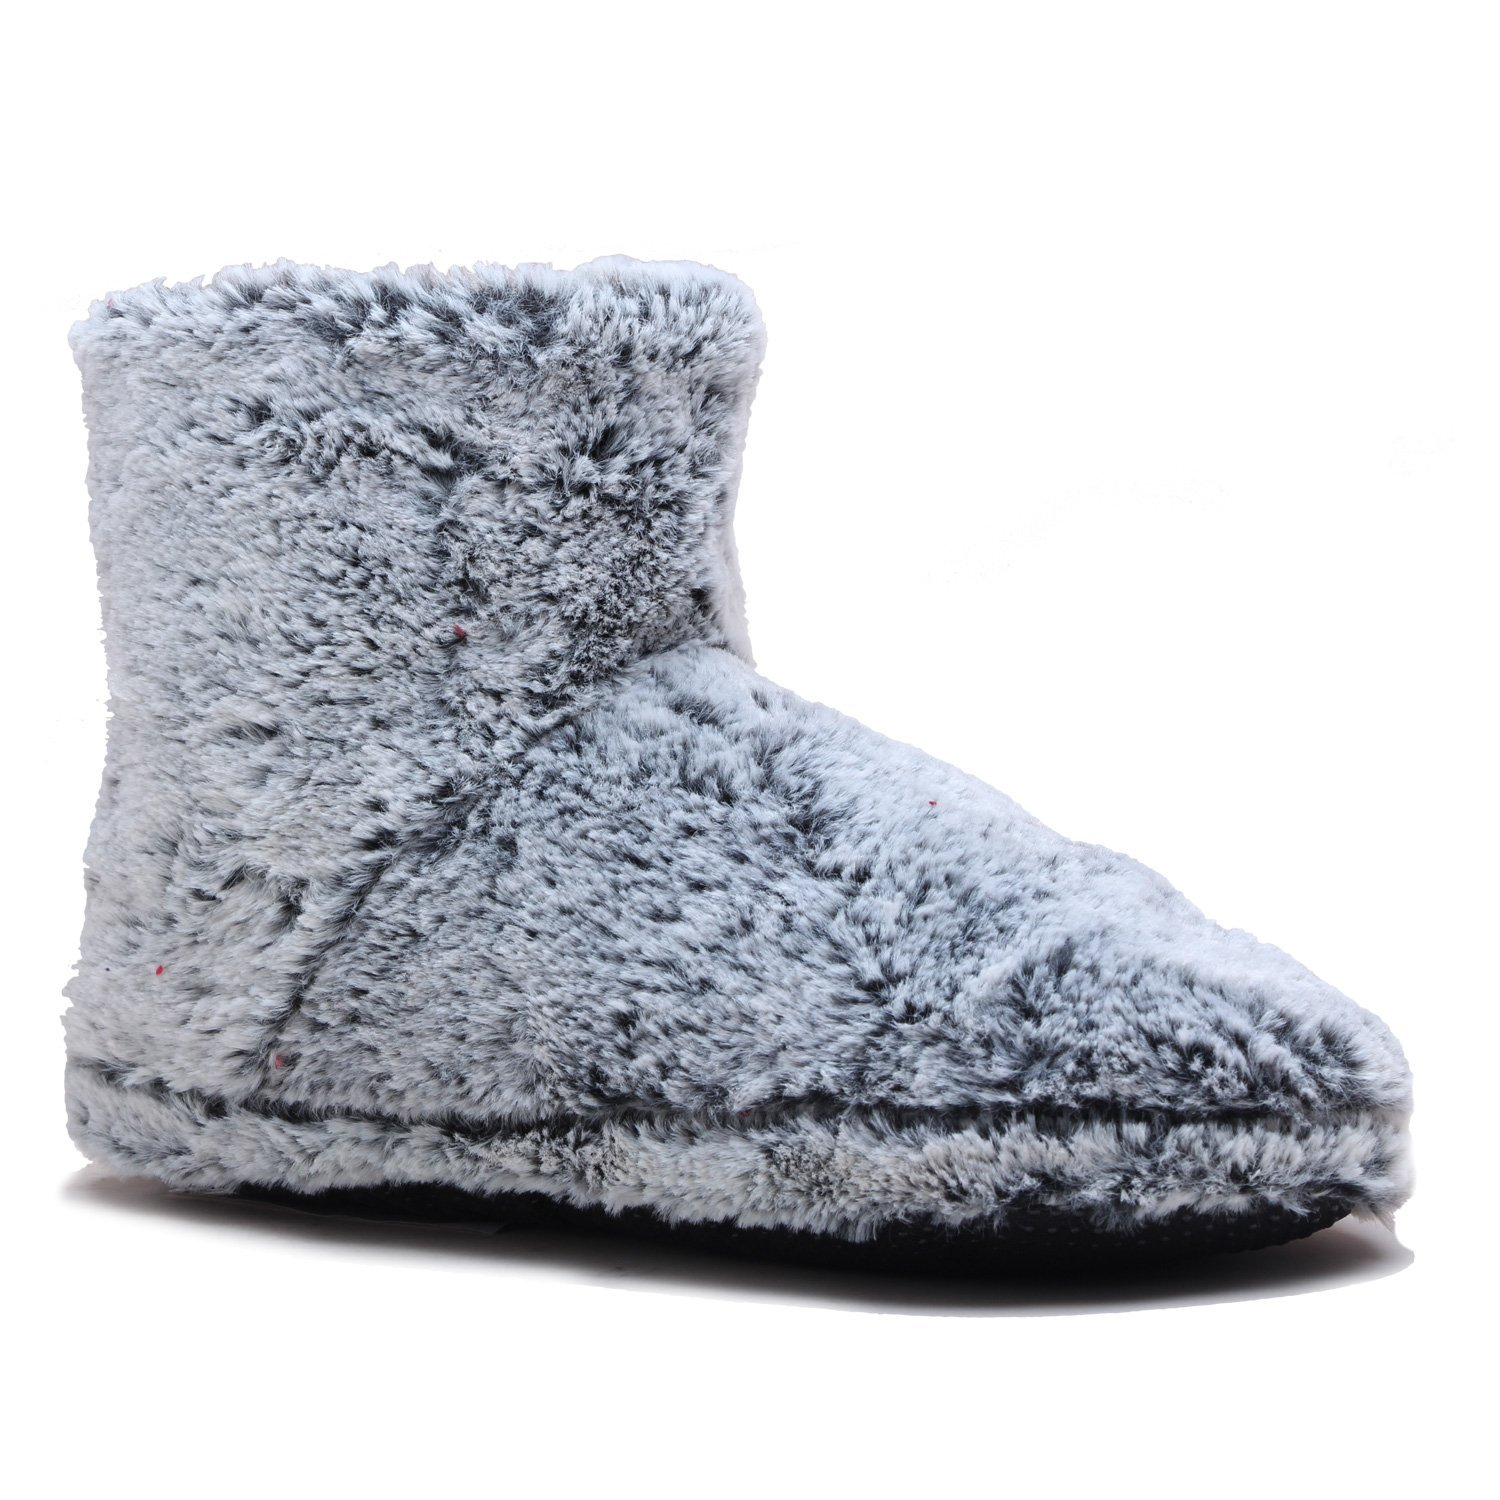 Snookiz Microwave Heated Slippers For